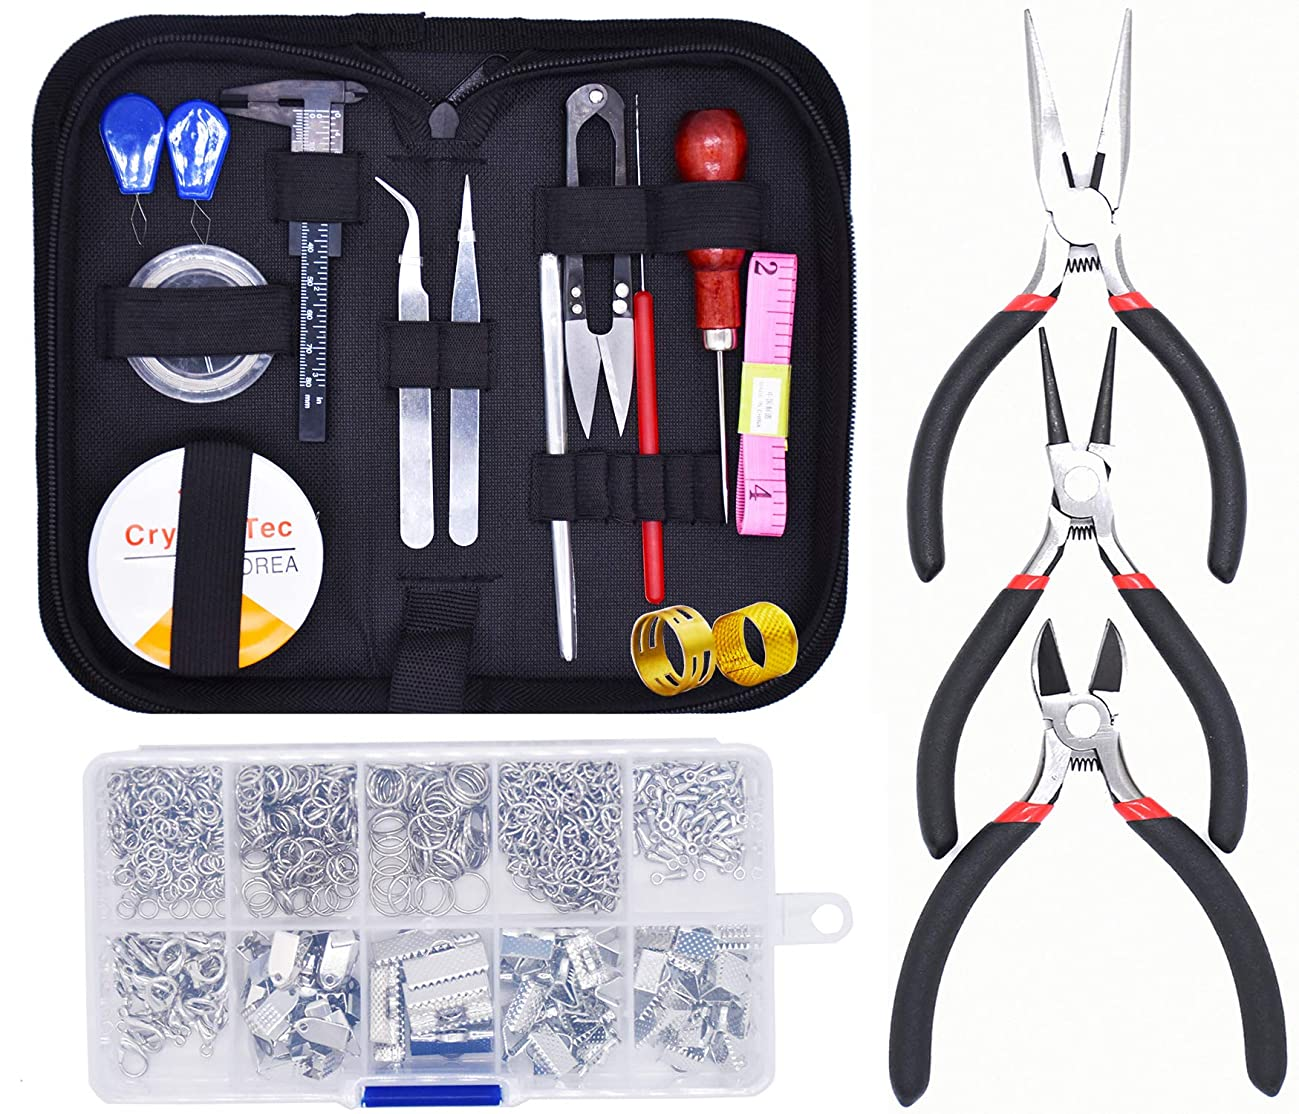 Handshop Jewelry Making Supplies Kit - Jewelry Repair Tools,Jewelry Beading Wire and Jewelry Findings